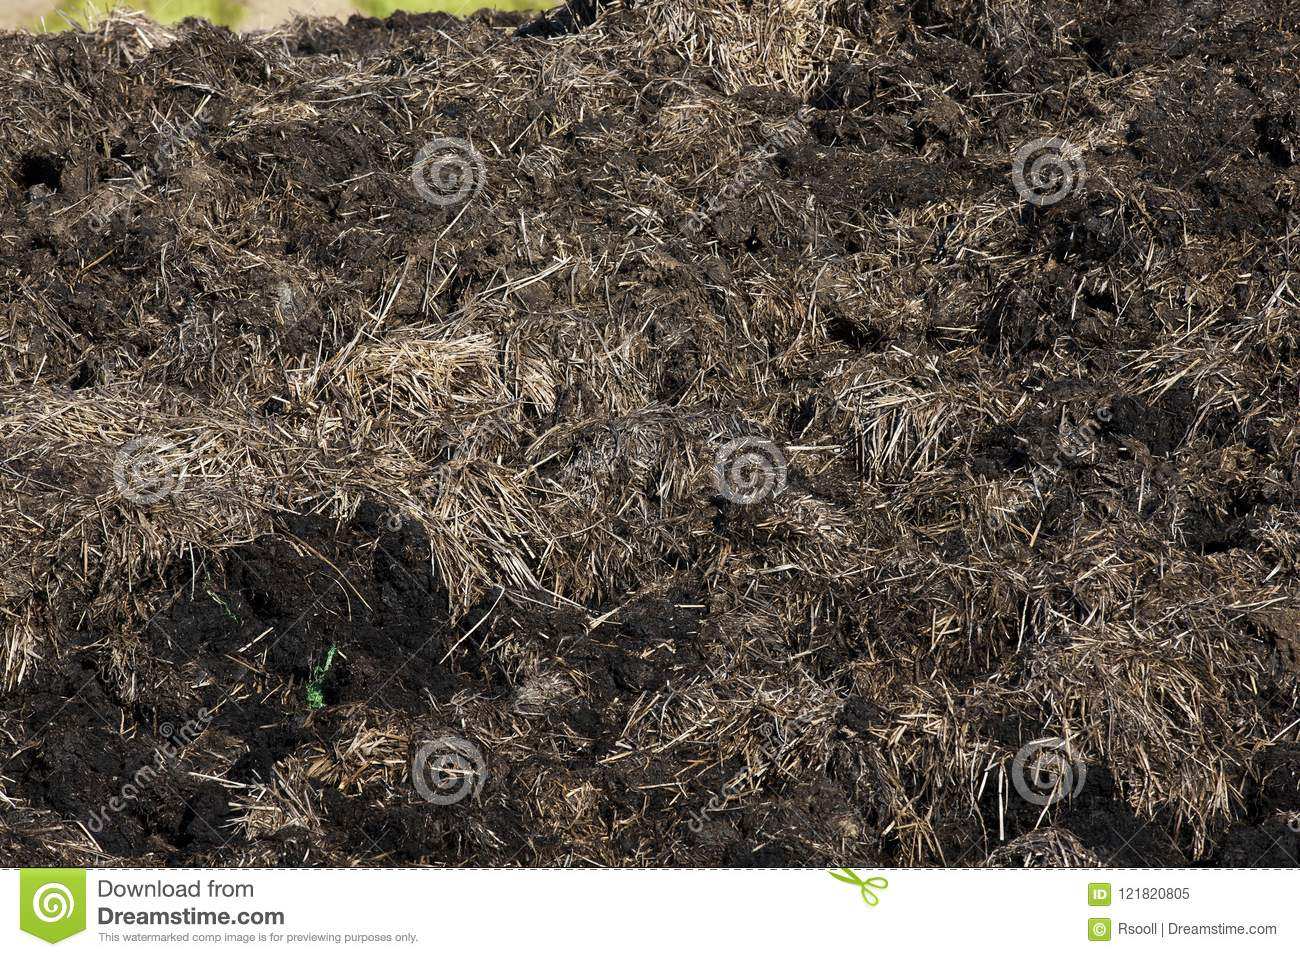 manure from cattle